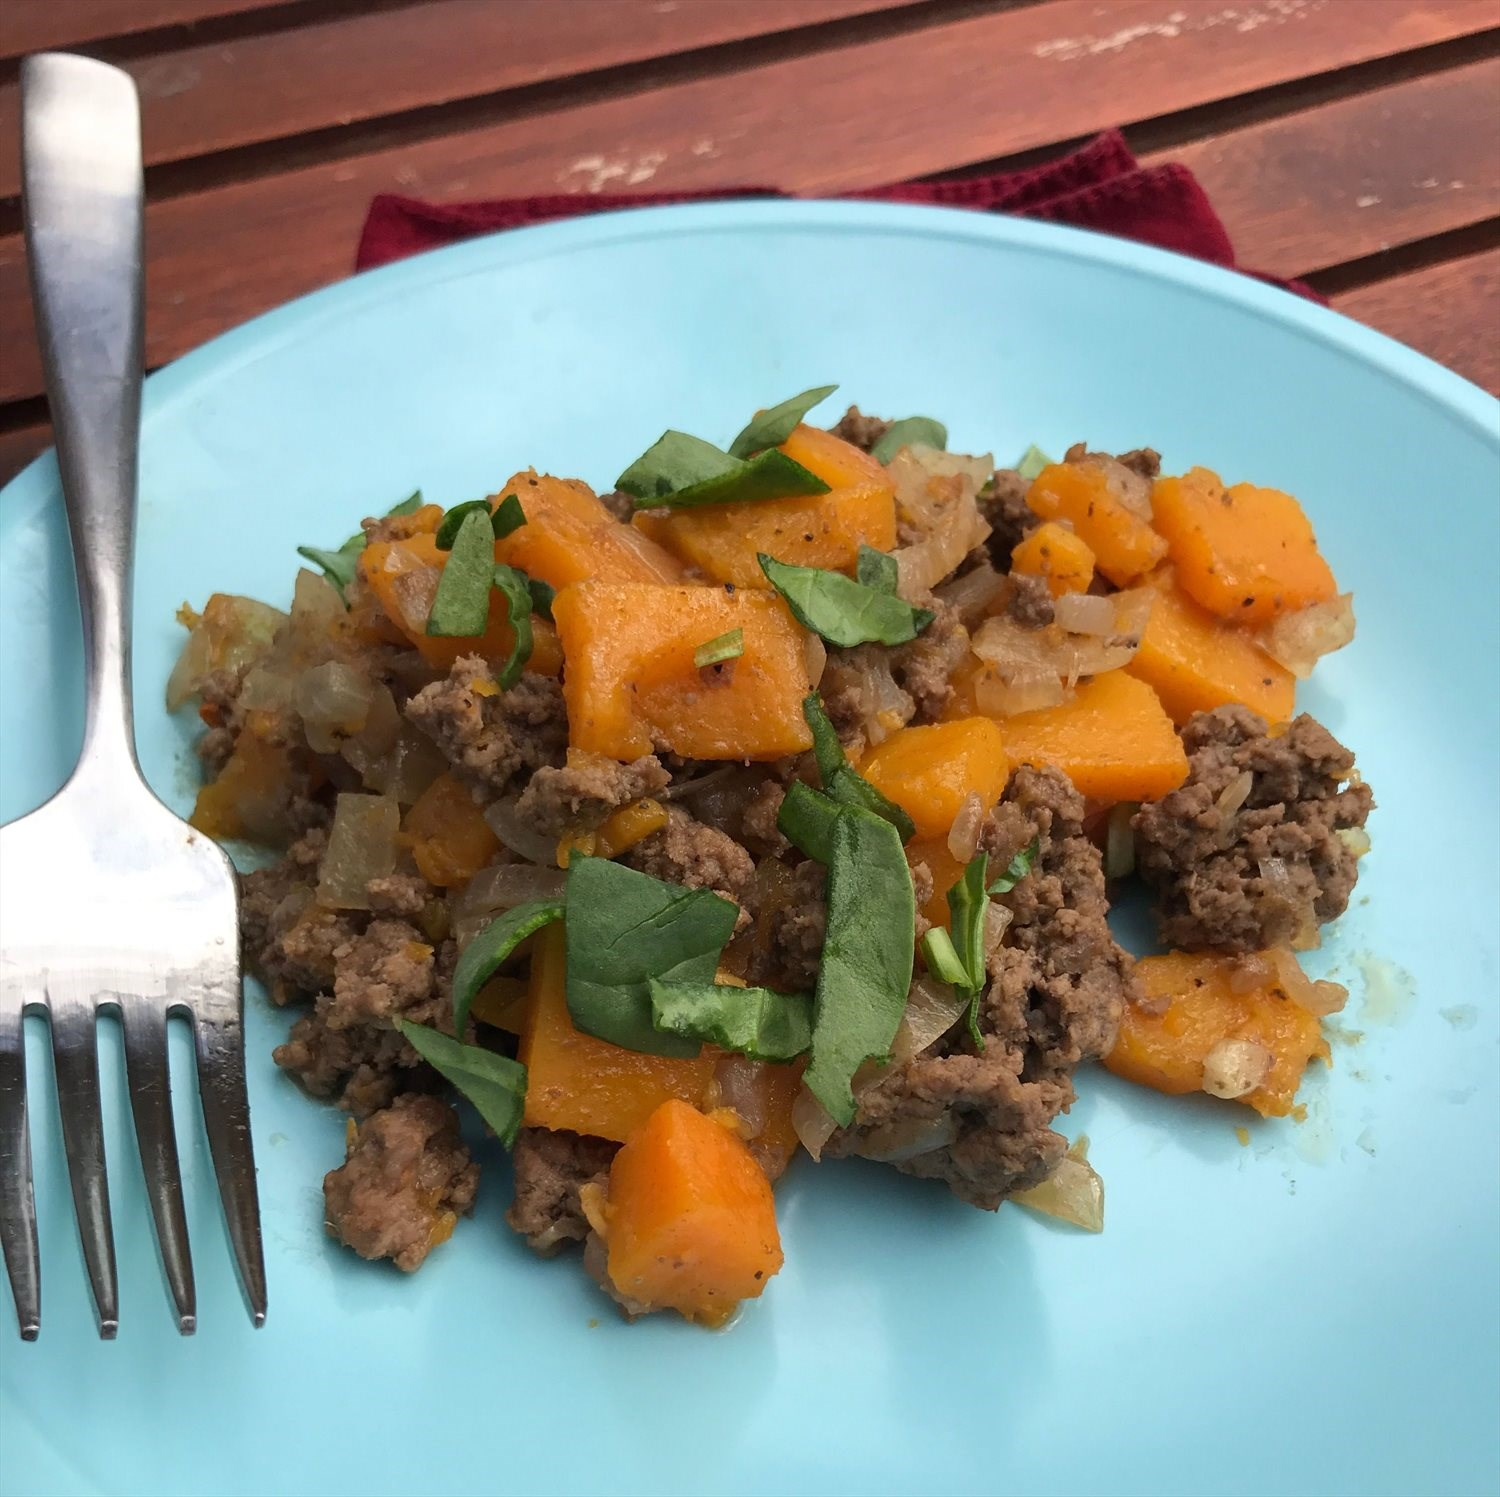 Spicy Beef and Butternut Squash